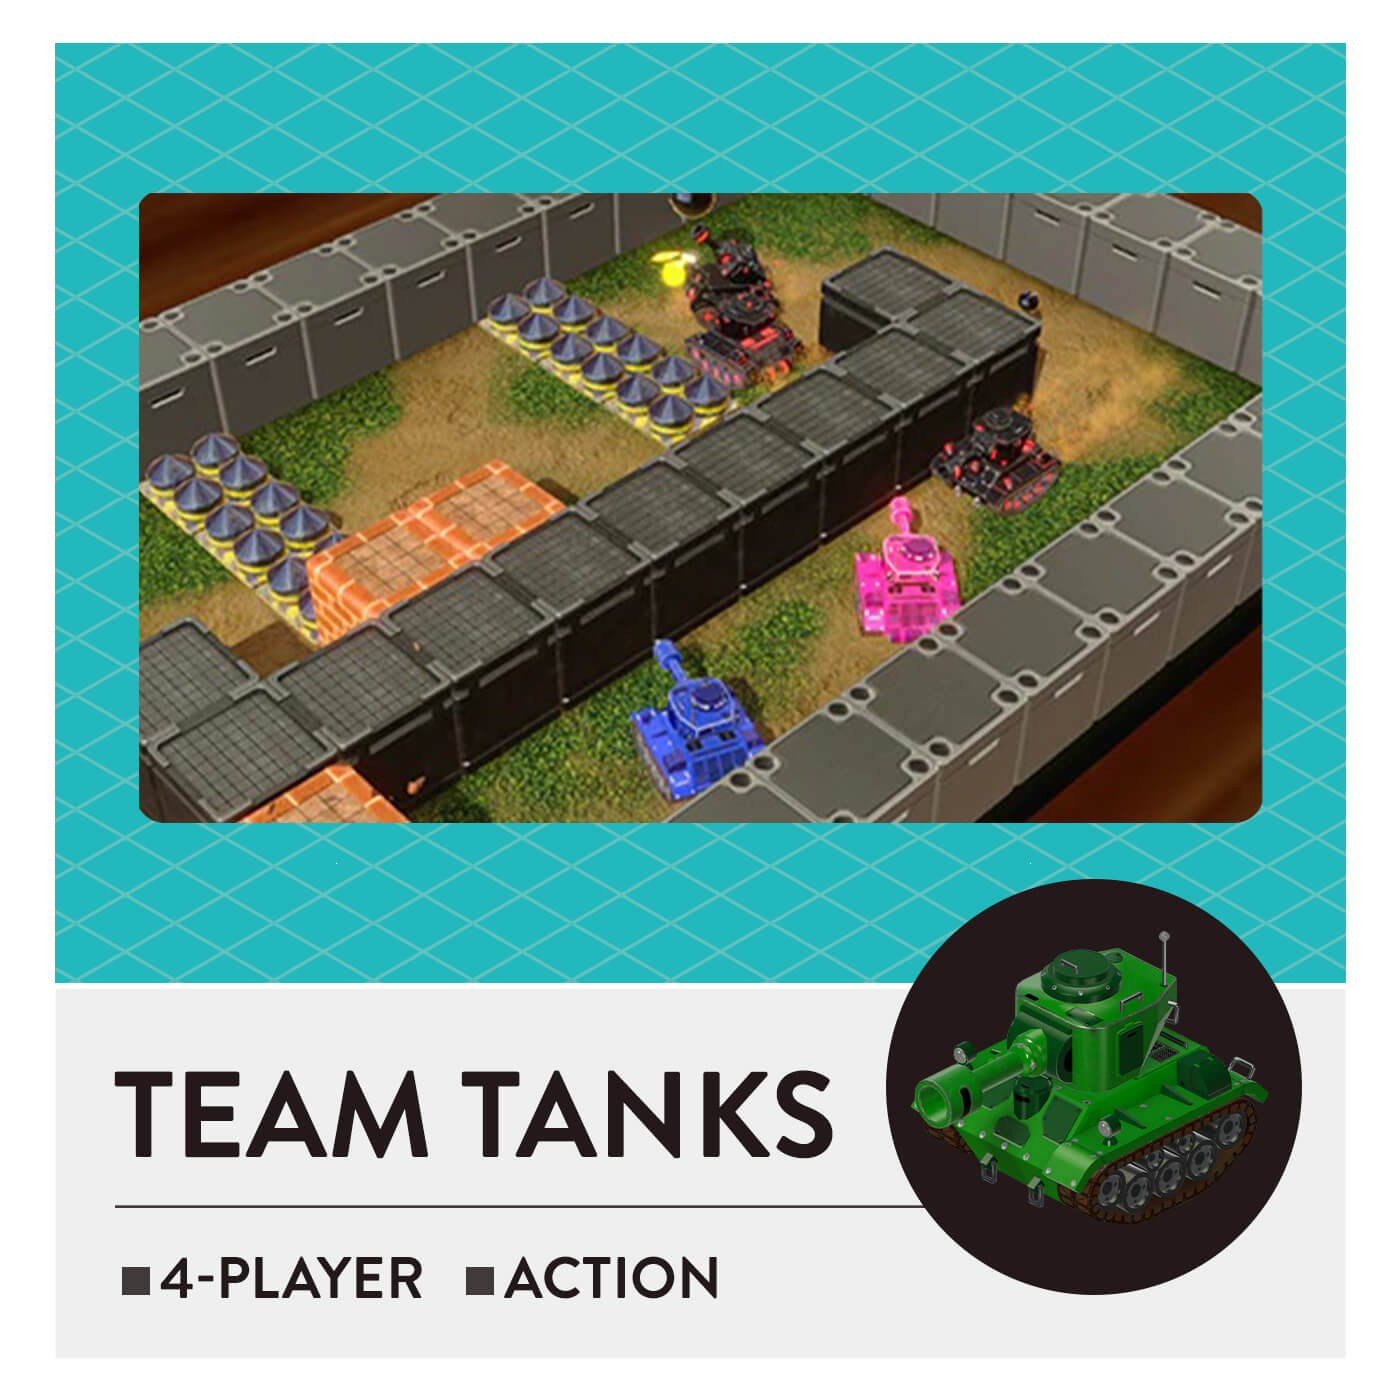 51 Worldwide Games - Team Tanks